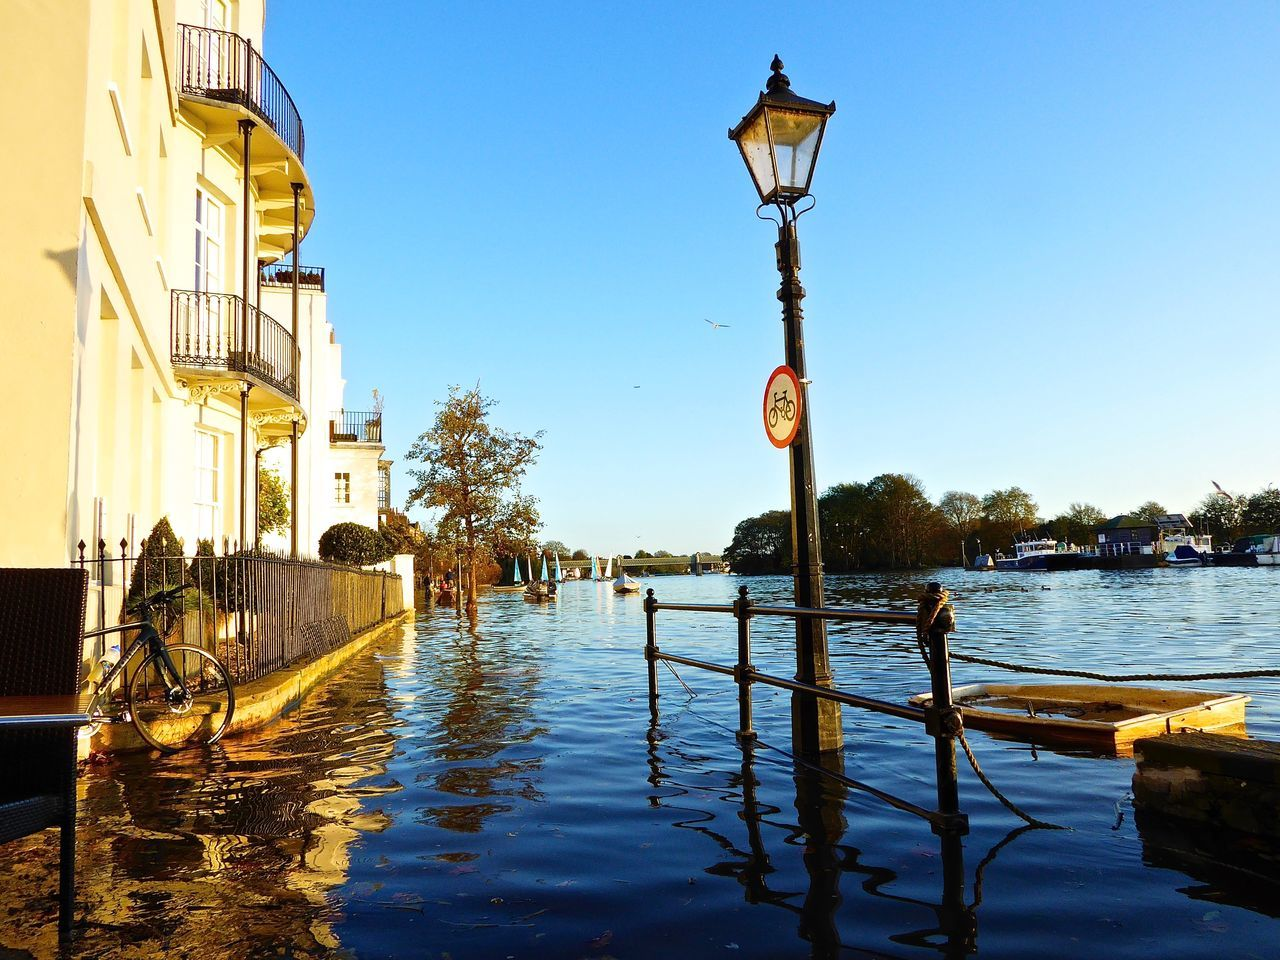 River Thames Thamesriver ChiswickRiverside Flooding Flooded Flooded Road Flooded Streets Blue Reflections In The Water